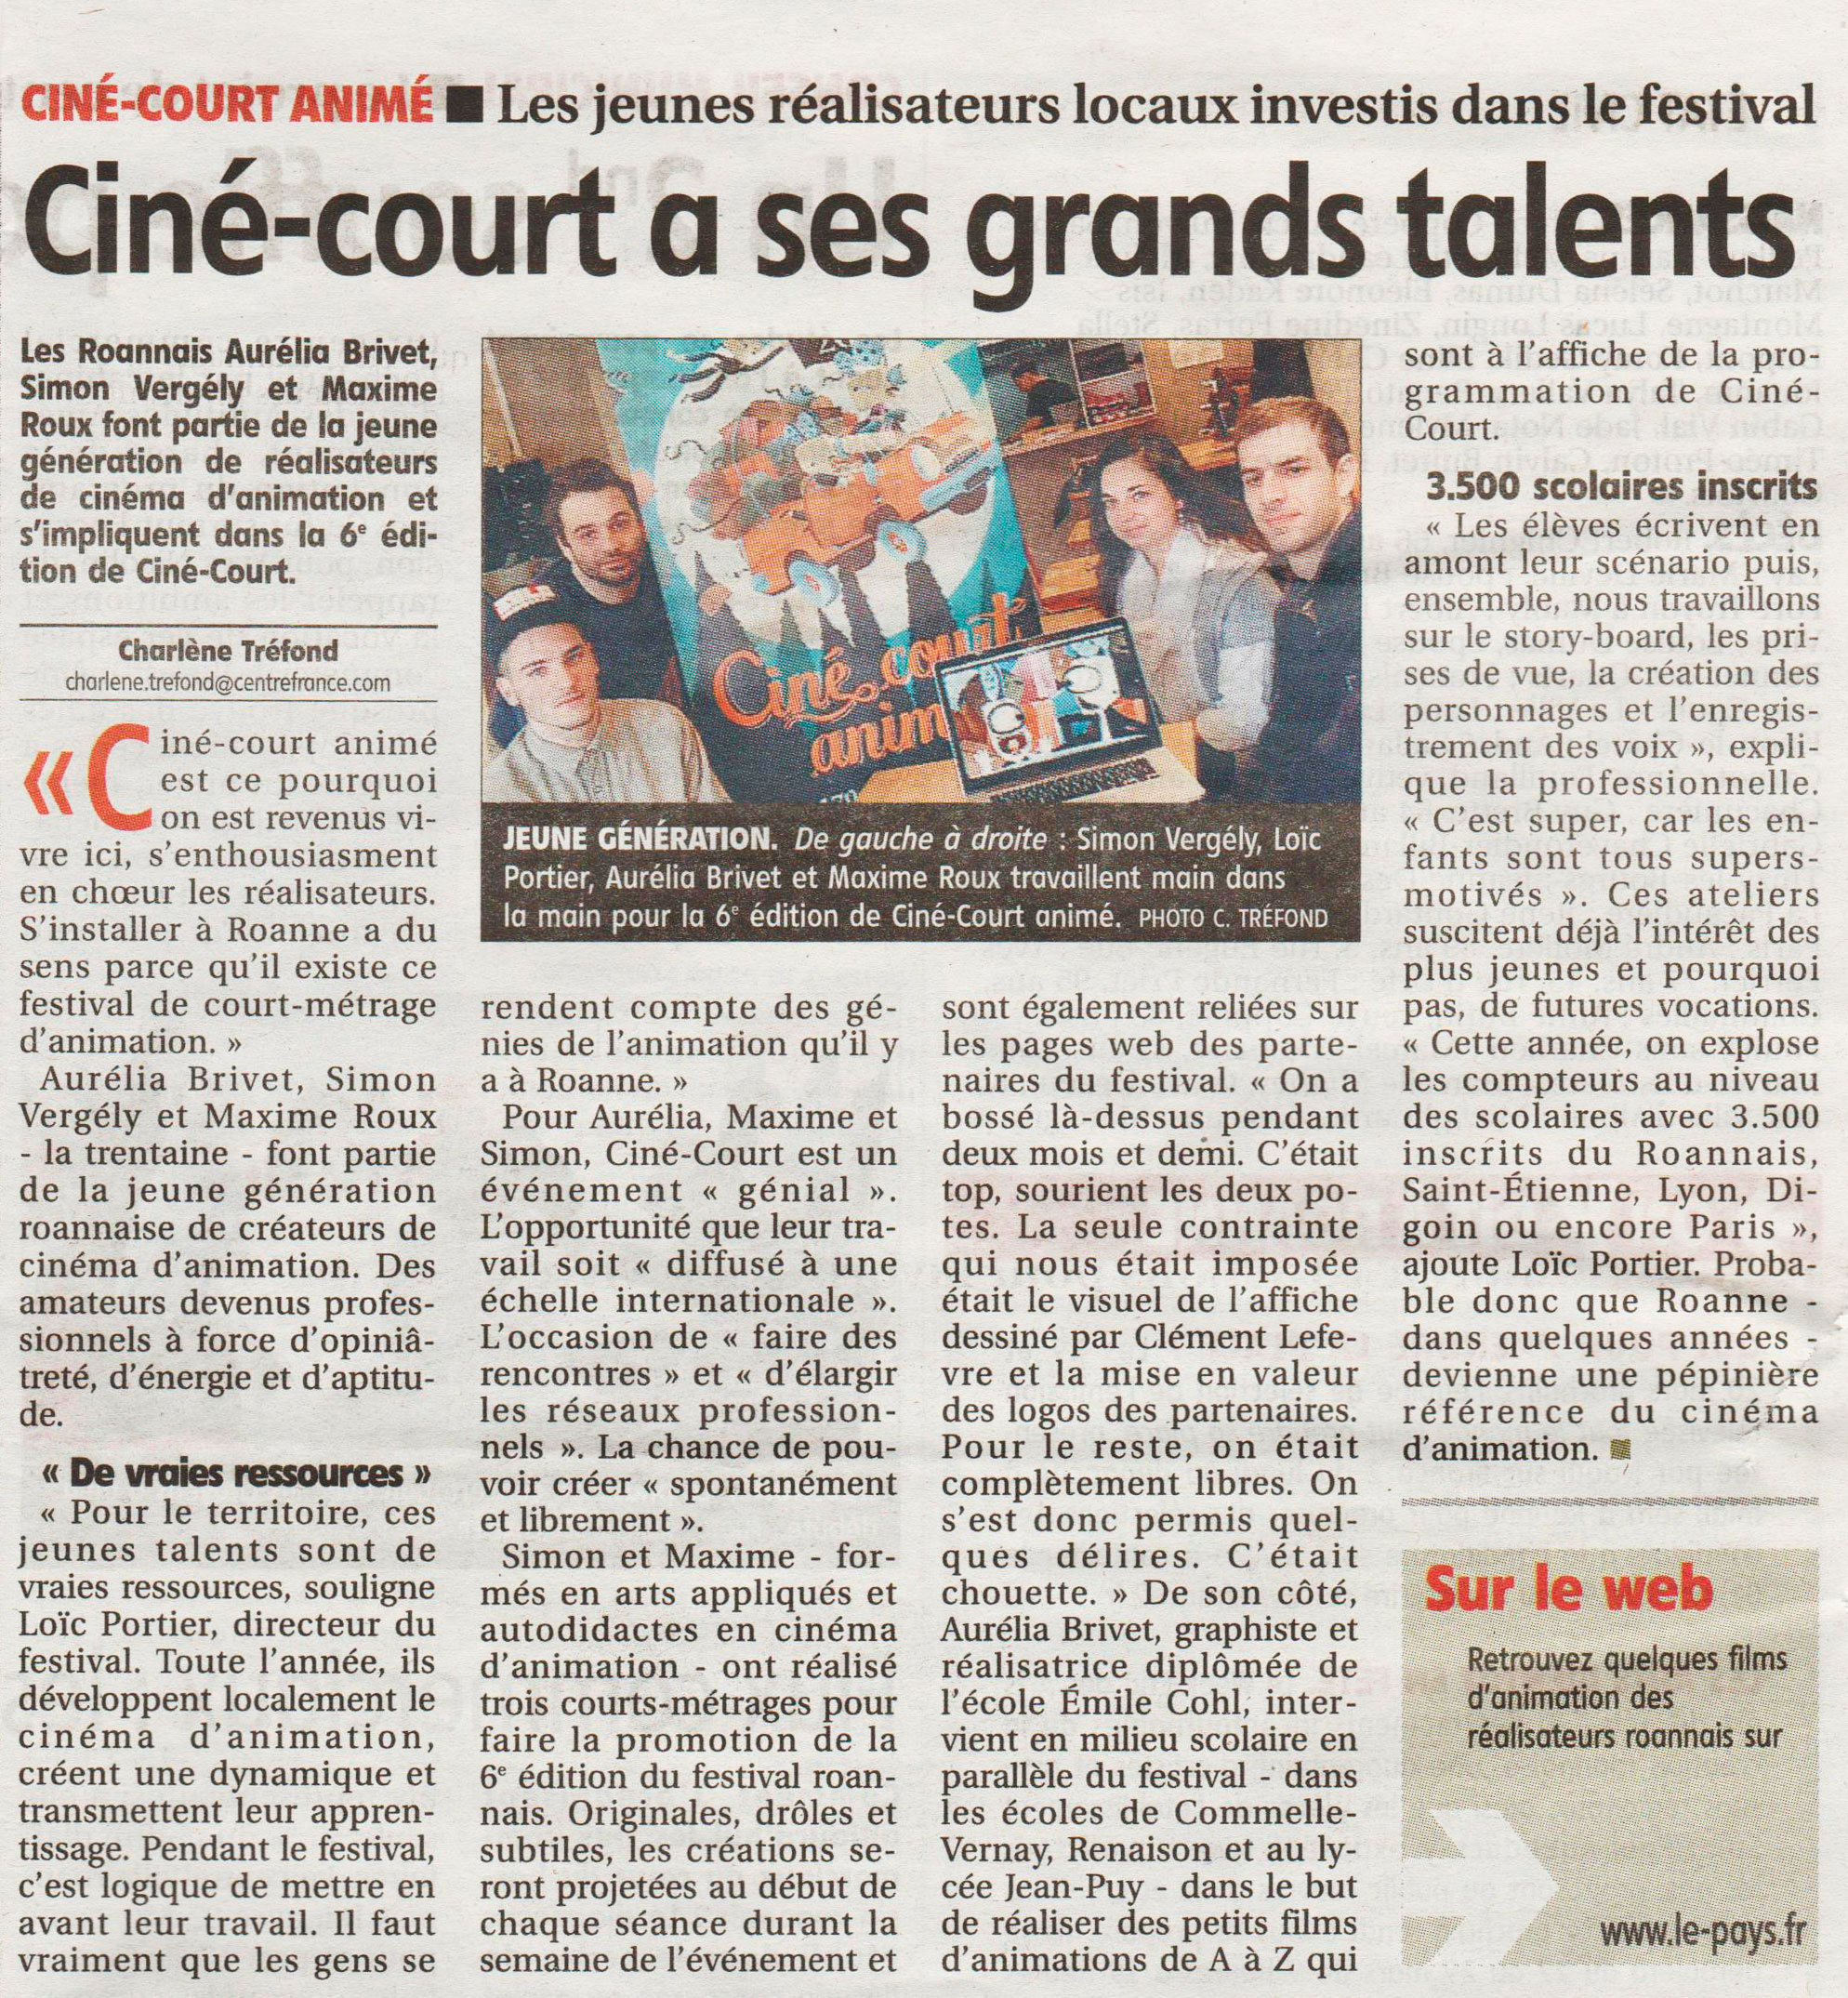 article-cine-court-realisateurs-aurelia-brivet